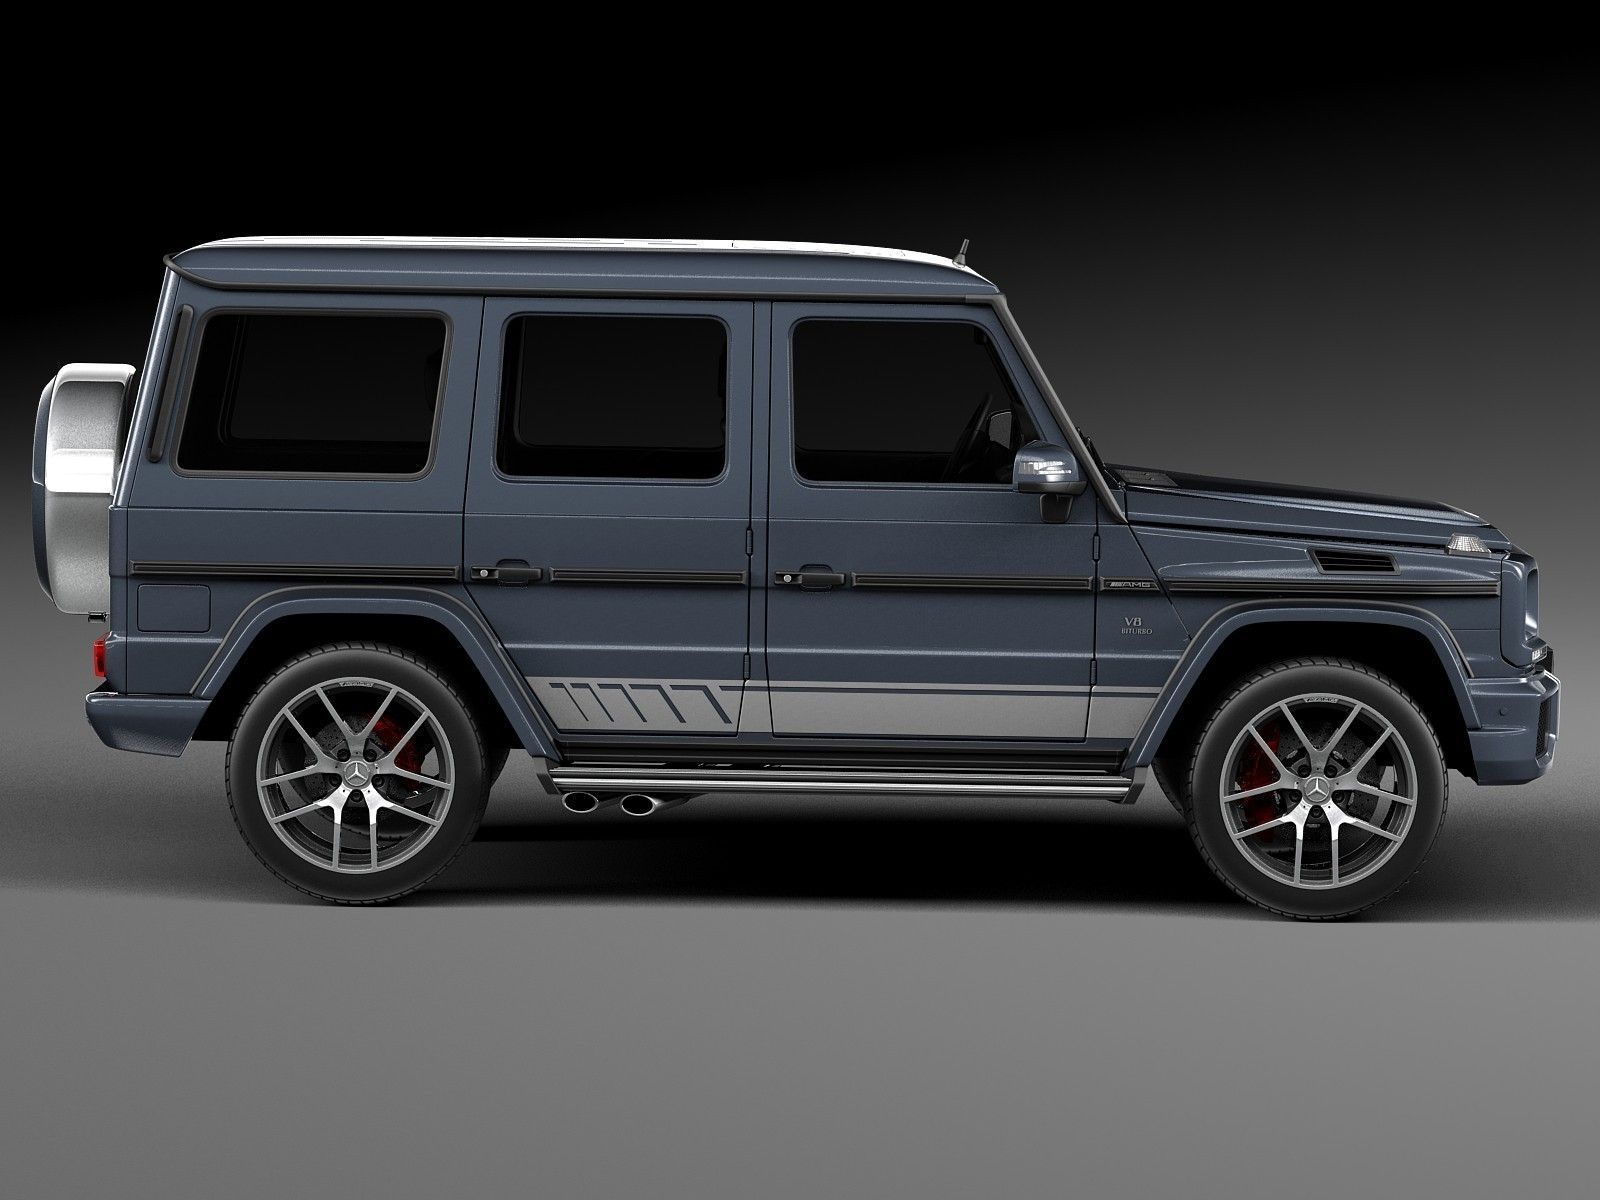 Mercedes Benz G63 Amg 2016 3d Model Max Obj 3ds Fbx C4d